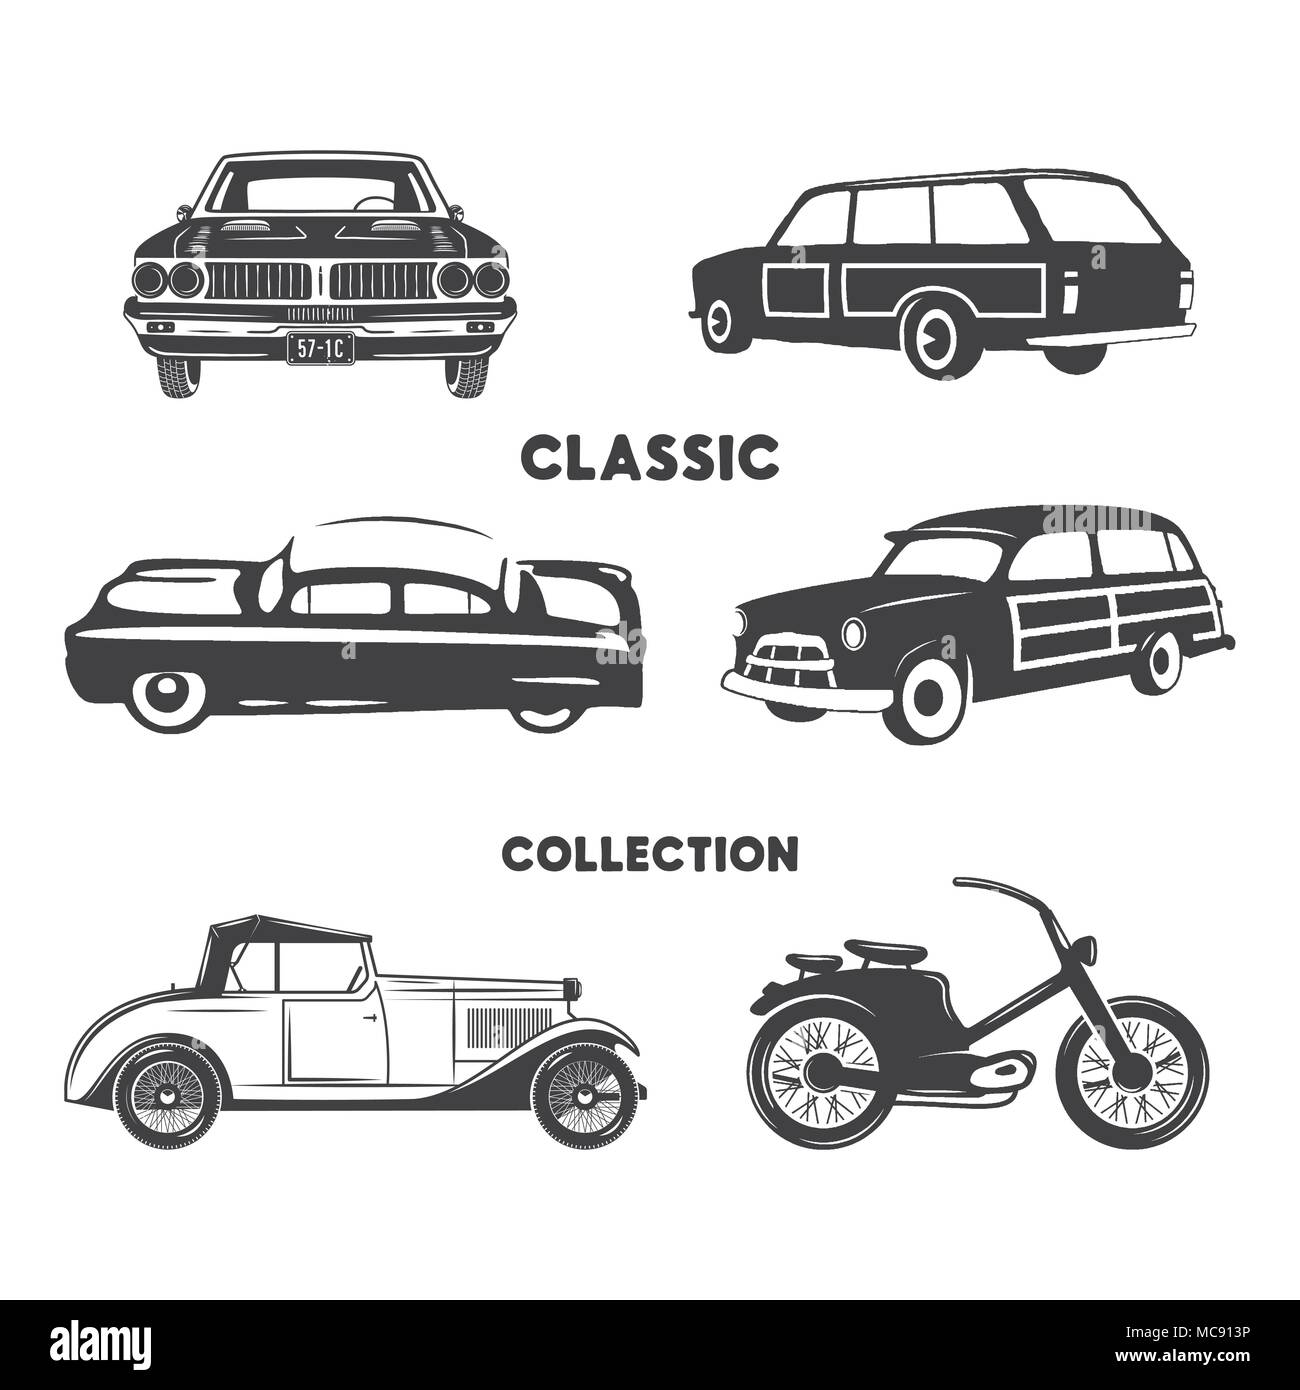 Classic cars, vintage car icons, symbols set.Vintage hand drawn cars, muscle, motorcycle elements. Use for logo, labels, t-shirt prints, tee graphics. Stock vector design isolated on white background. - Stock Vector